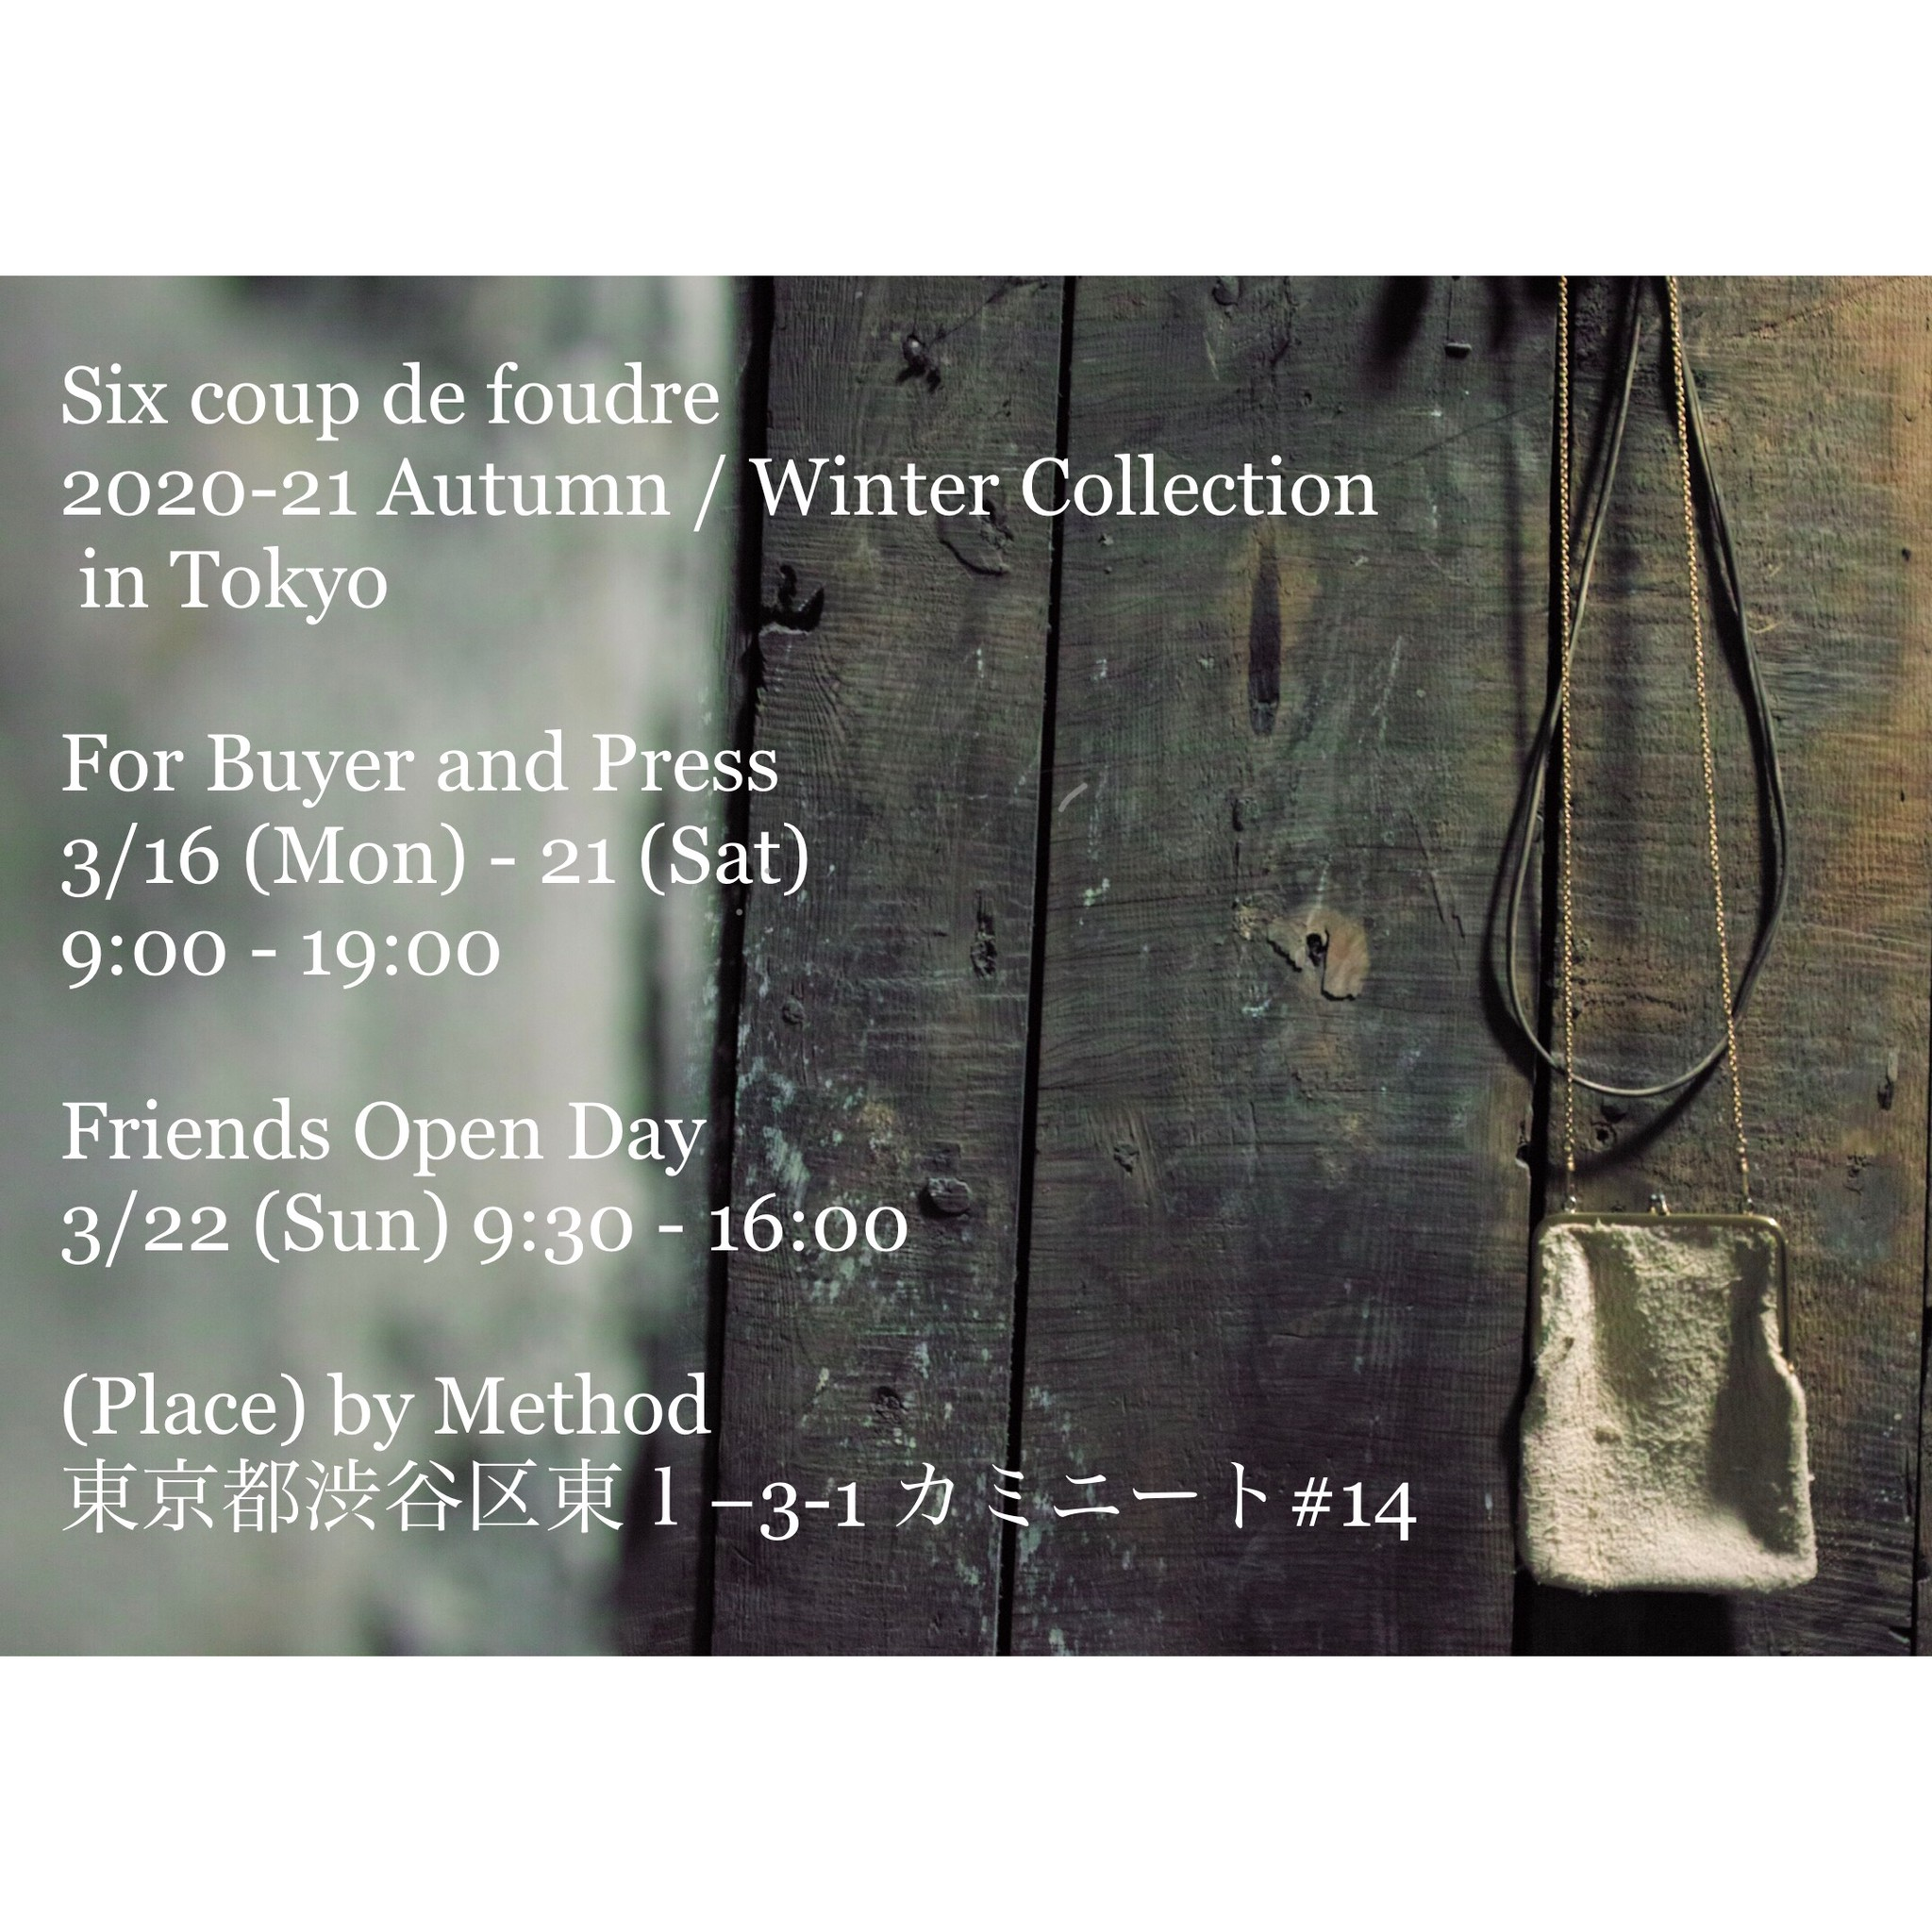 2020-21 Autumn / Winter Collection in Tokyo